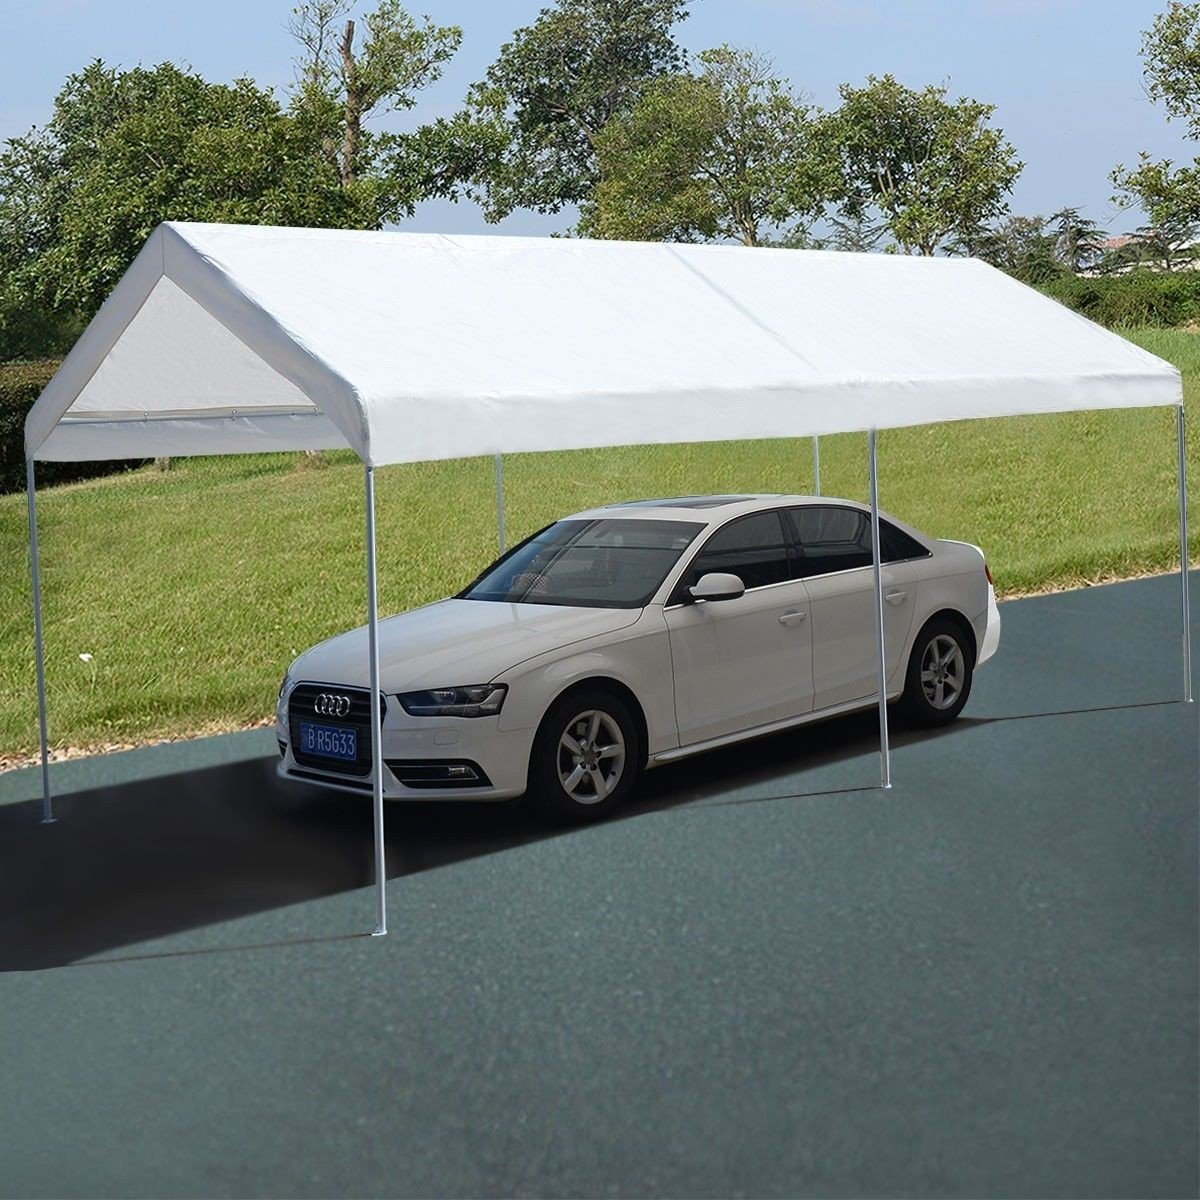 10 x 20 Steel Frame Canopy Shelter Portable Car Carport Garage Cover Party Tent Apontus